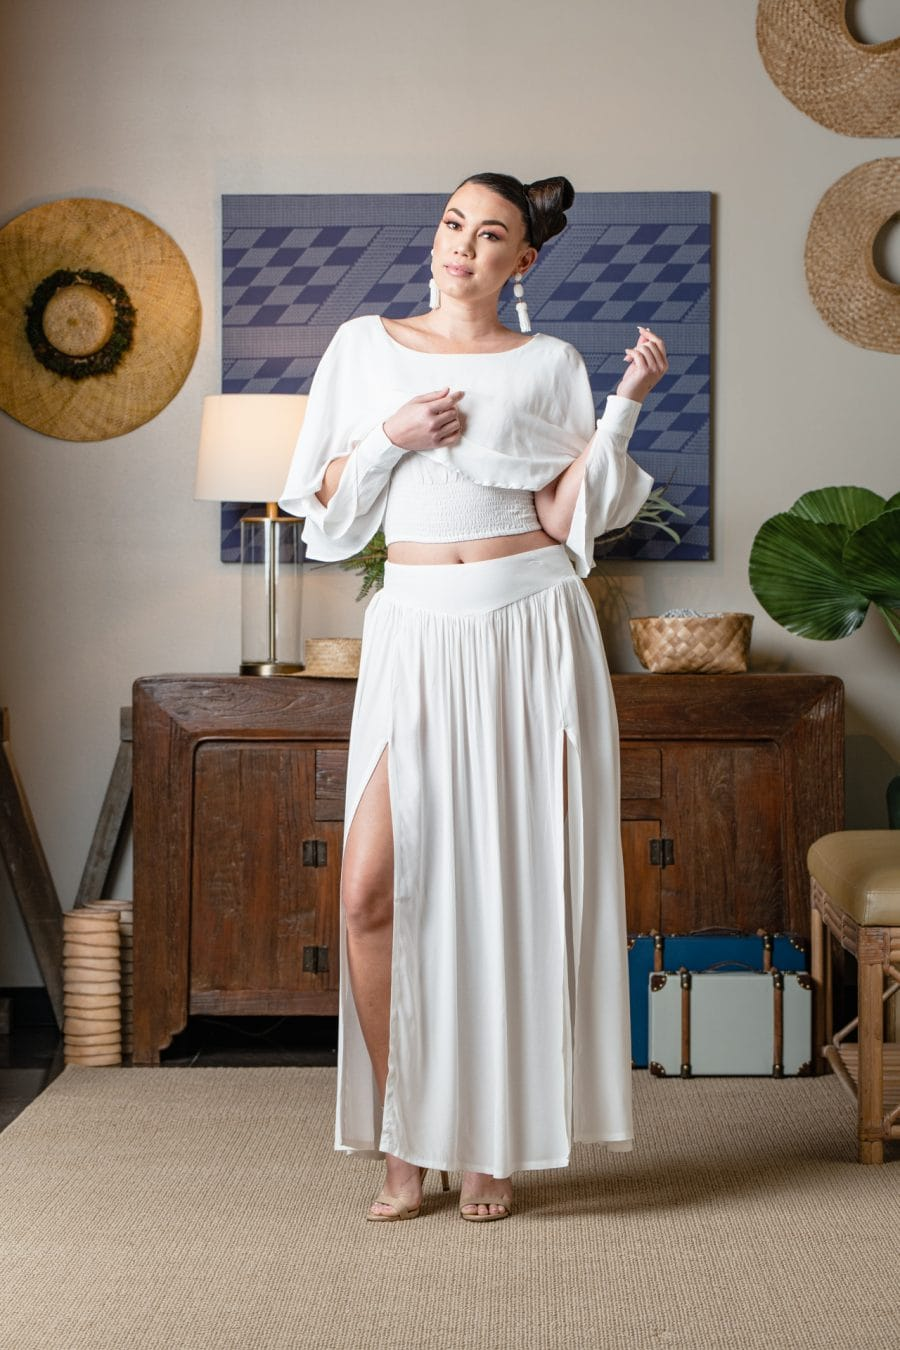 Model wearing MAOLI SKIRT-SOLID WHITE - Front View